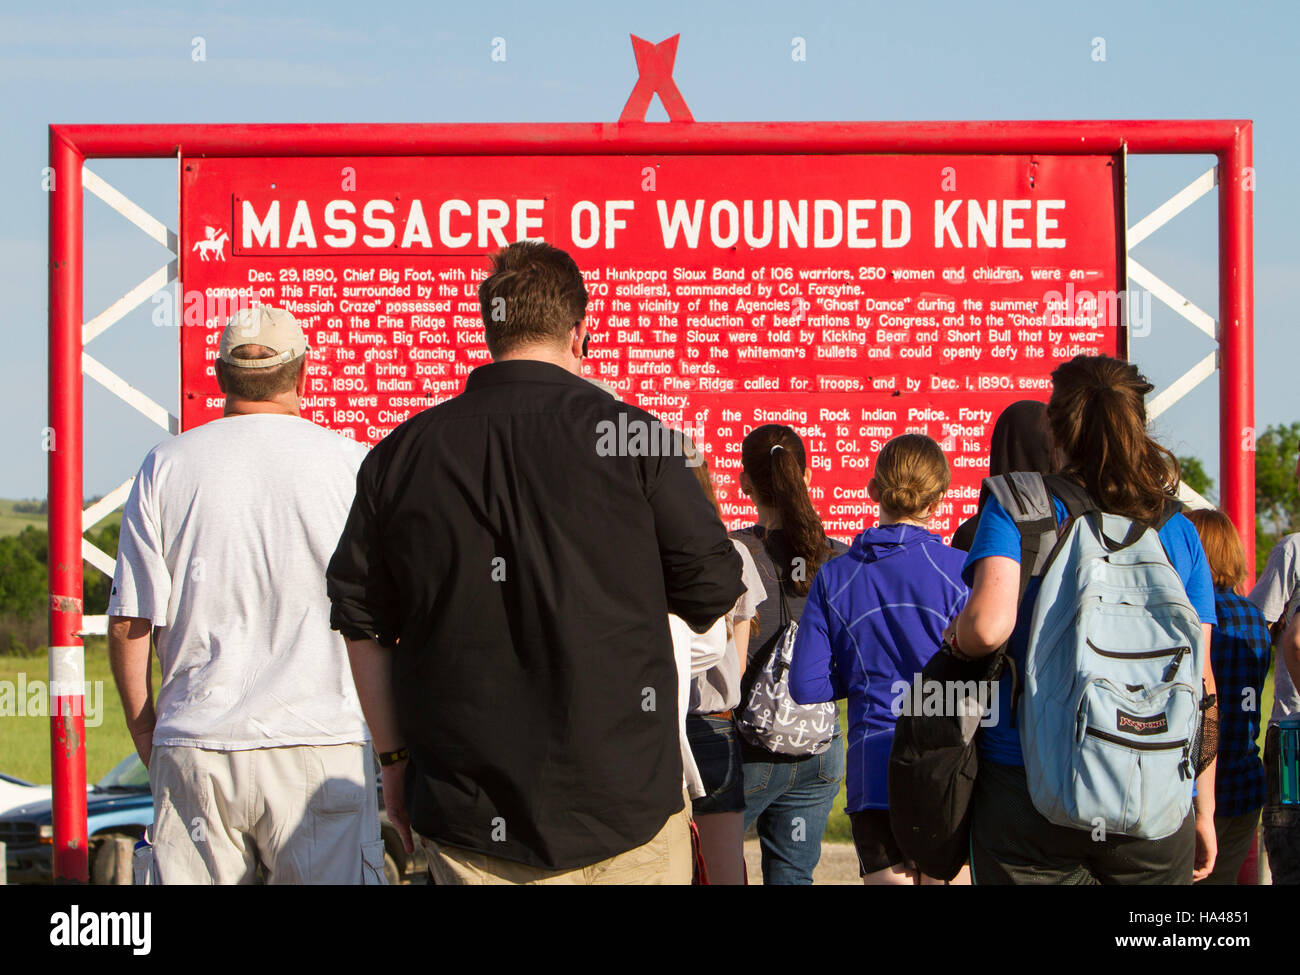 Memorial to the Wounded Knee Massacre that occurred on December 29, 1890, near Wounded Knee Creek on the Lakota Stock Photo